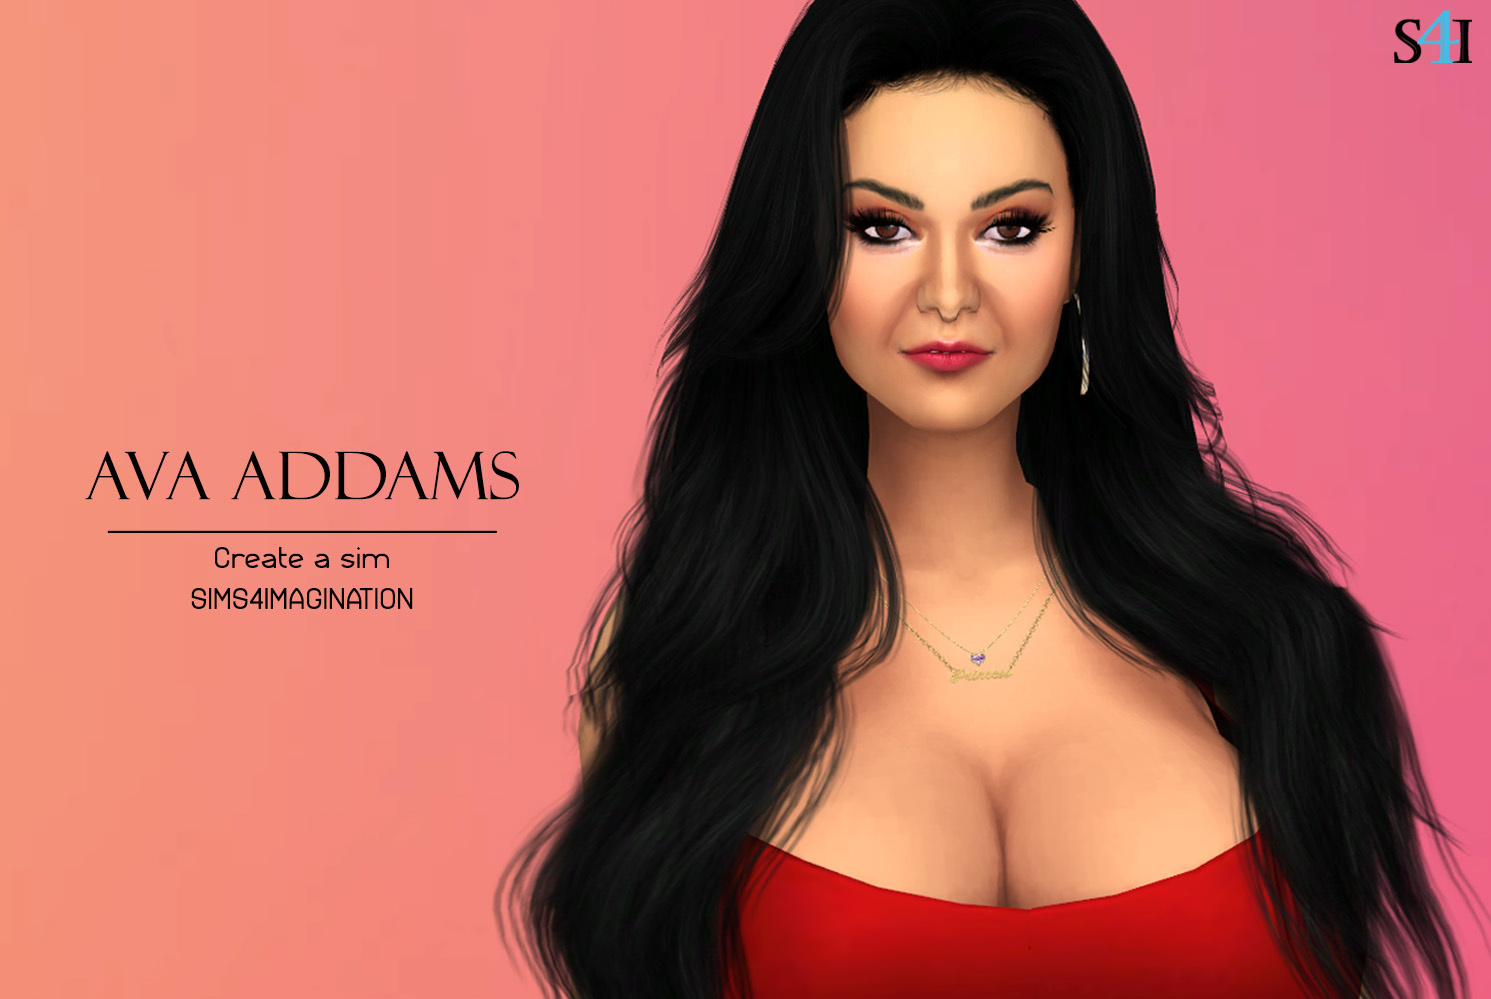 Ava Addams mod] - [others] the sims 4: mod collection [k.leoric]   f95zone